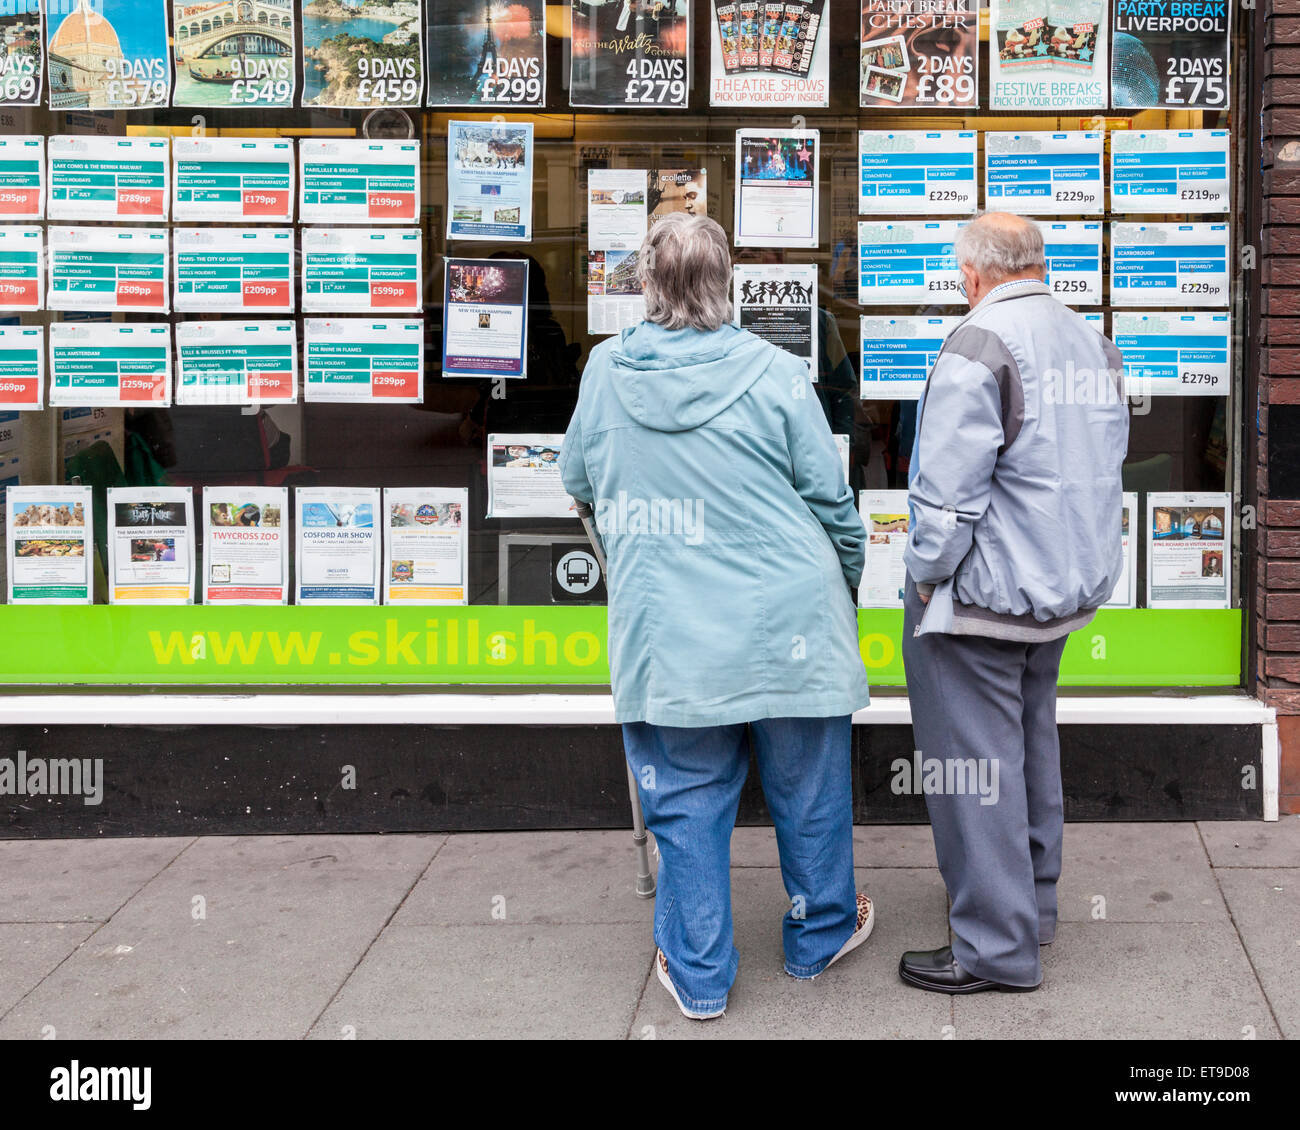 Travel agent's window. Older people looking at holiday information in Skills Holidays travel agency, Nottingham, - Stock Image